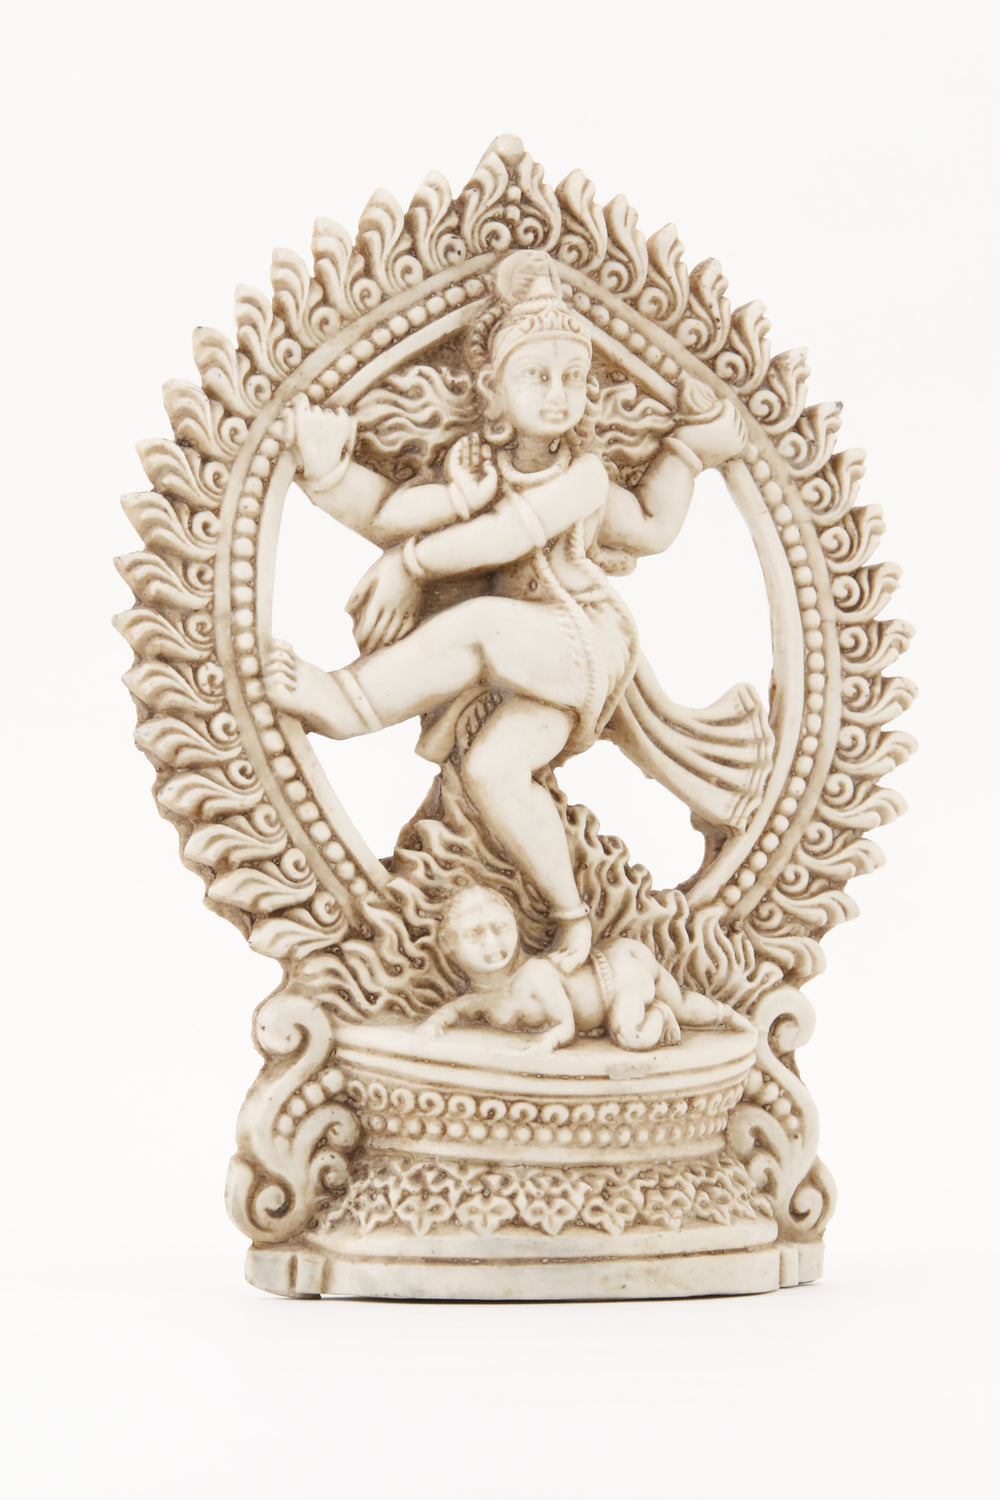 SHIVA DANCING POSE STATUE LIGHT SIDE 2 VIEW